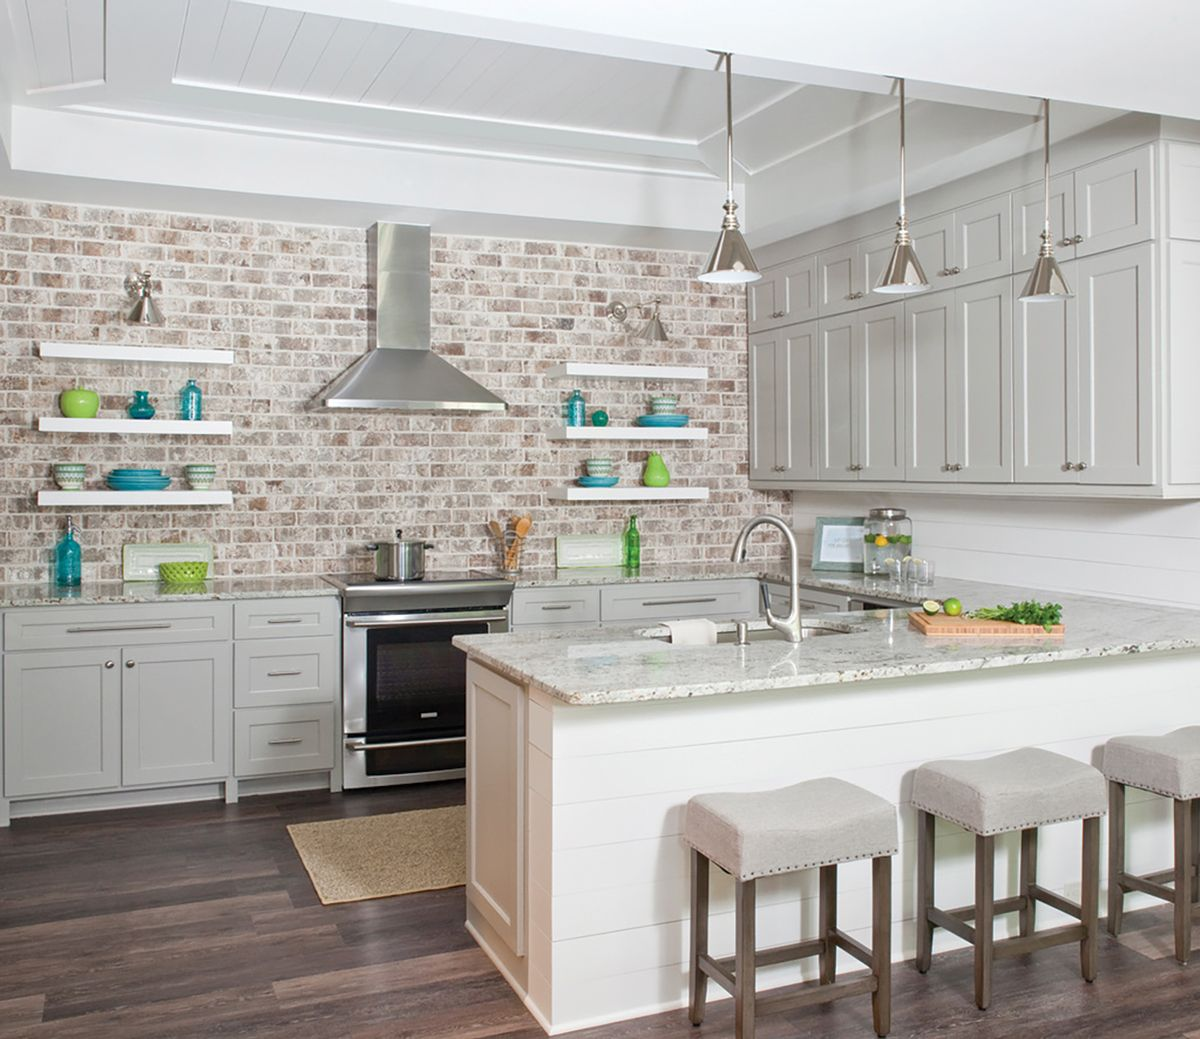 Kitchen Cabinets Or Open Shelving We Asked An Expert For The Pros And Cons Rustic Kitchen Design Rustic Kitchen Kitchen Interior